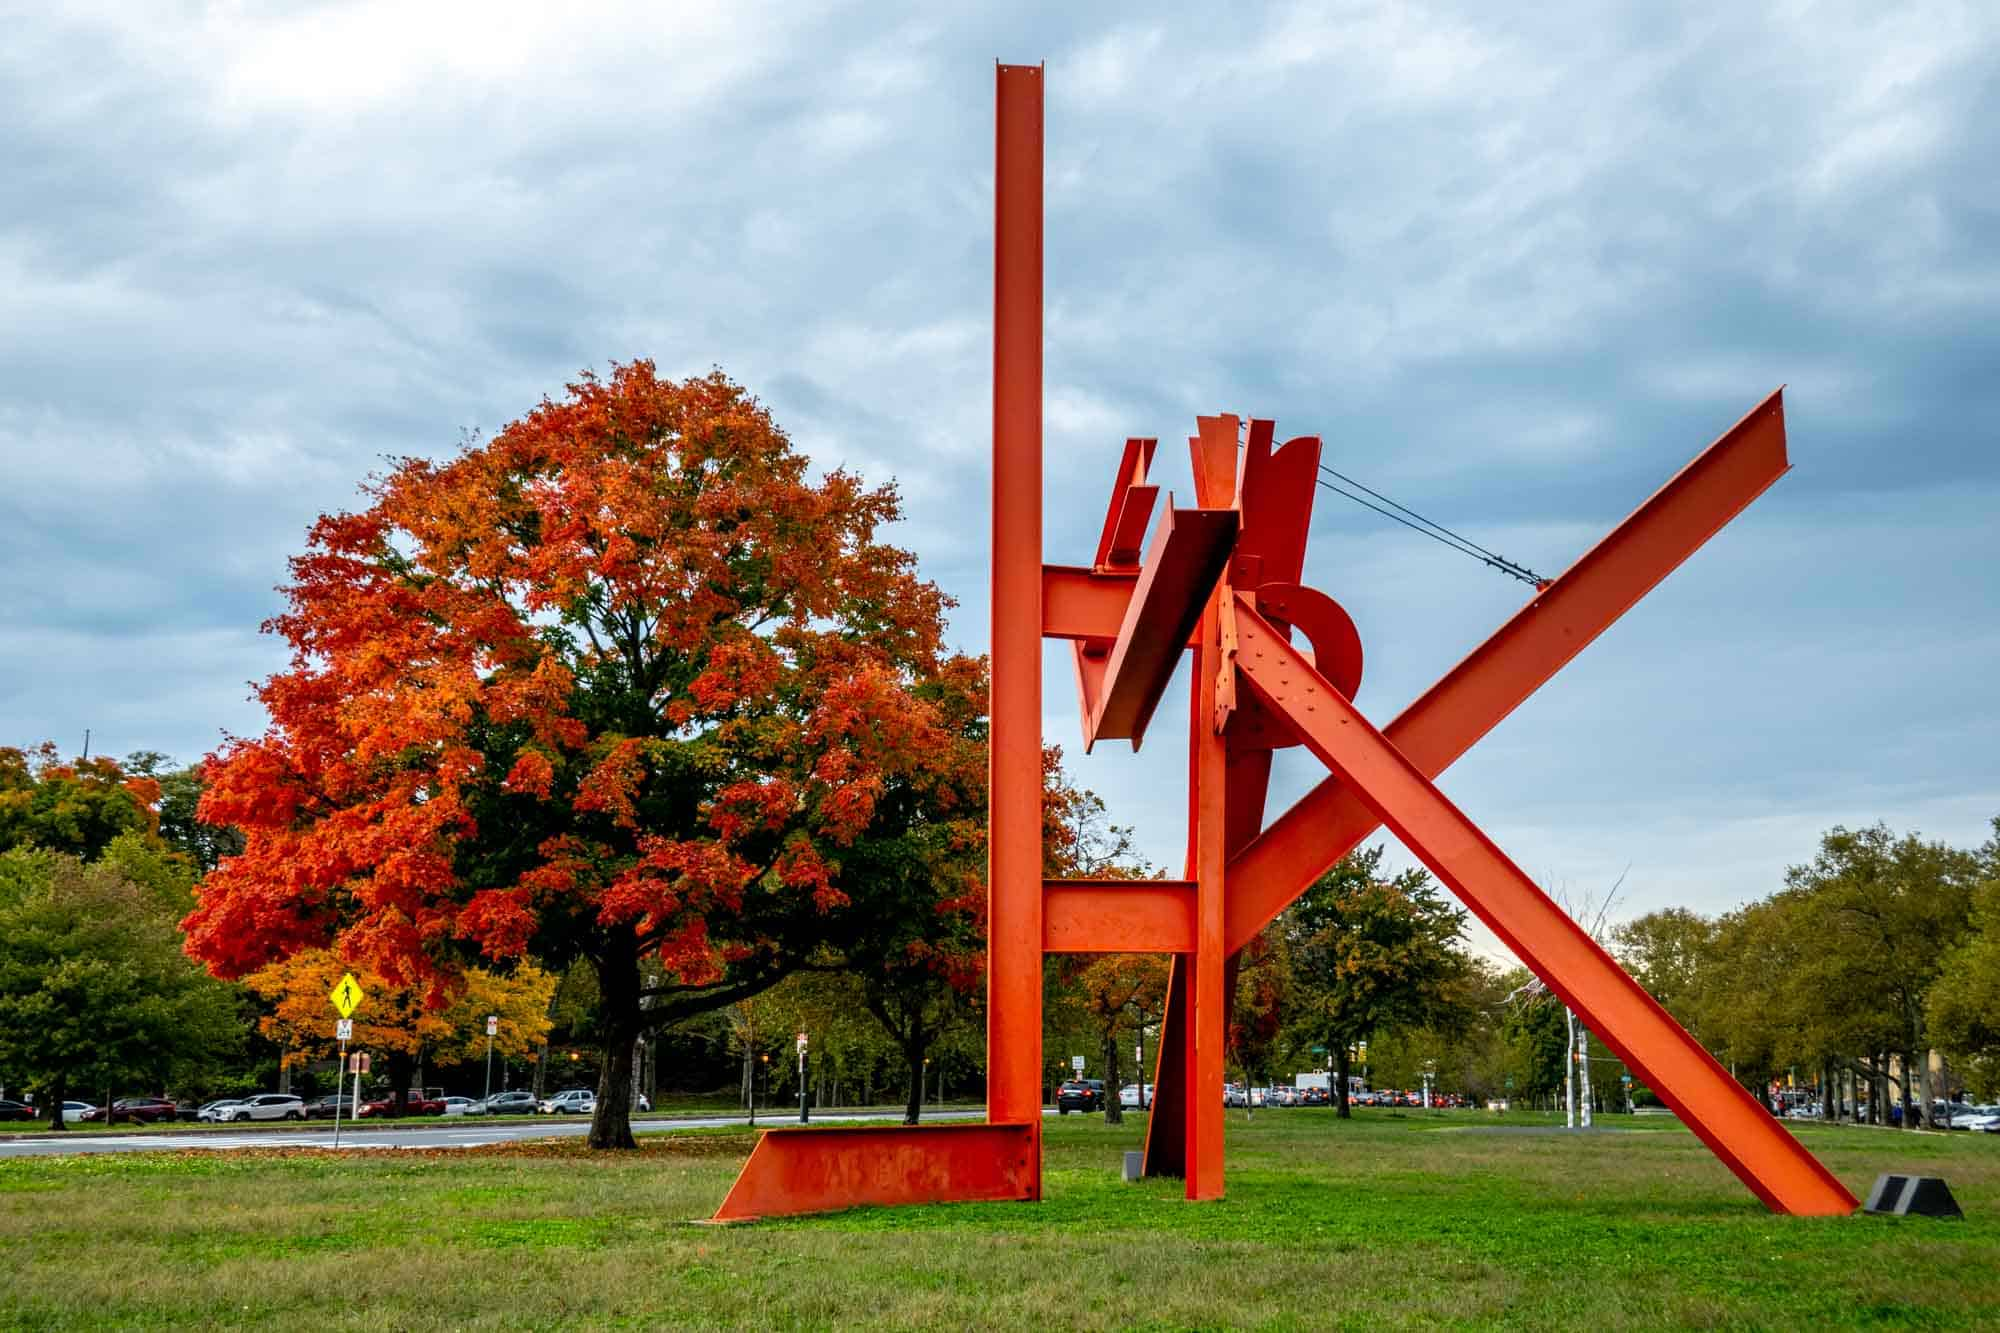 Bright red maple tree beside an abstract sculpture made from red steel